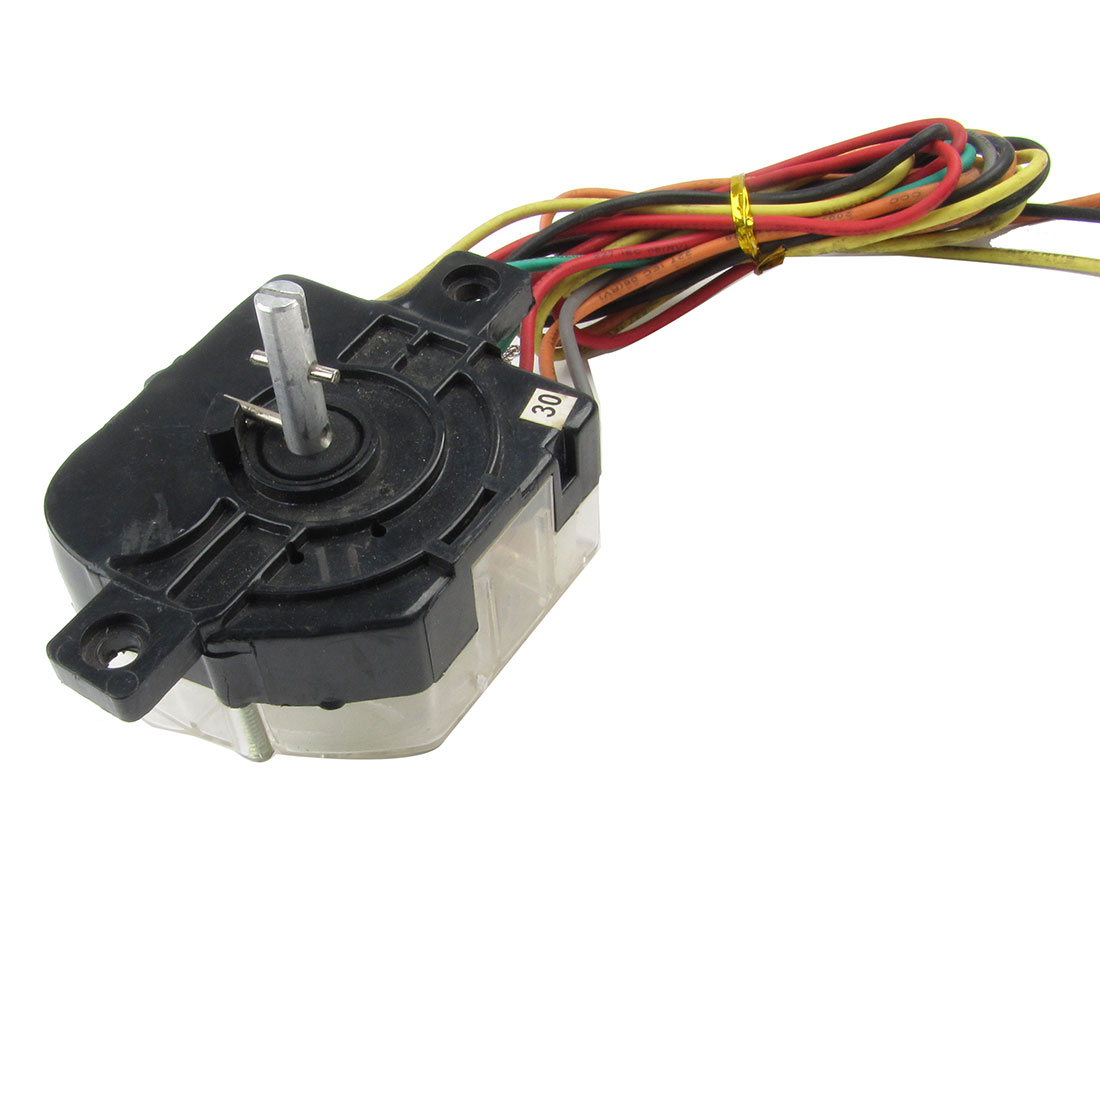 AC 7A 110V 3.5A220VAC 7 Wires Black Controller Timer for Washing Machine